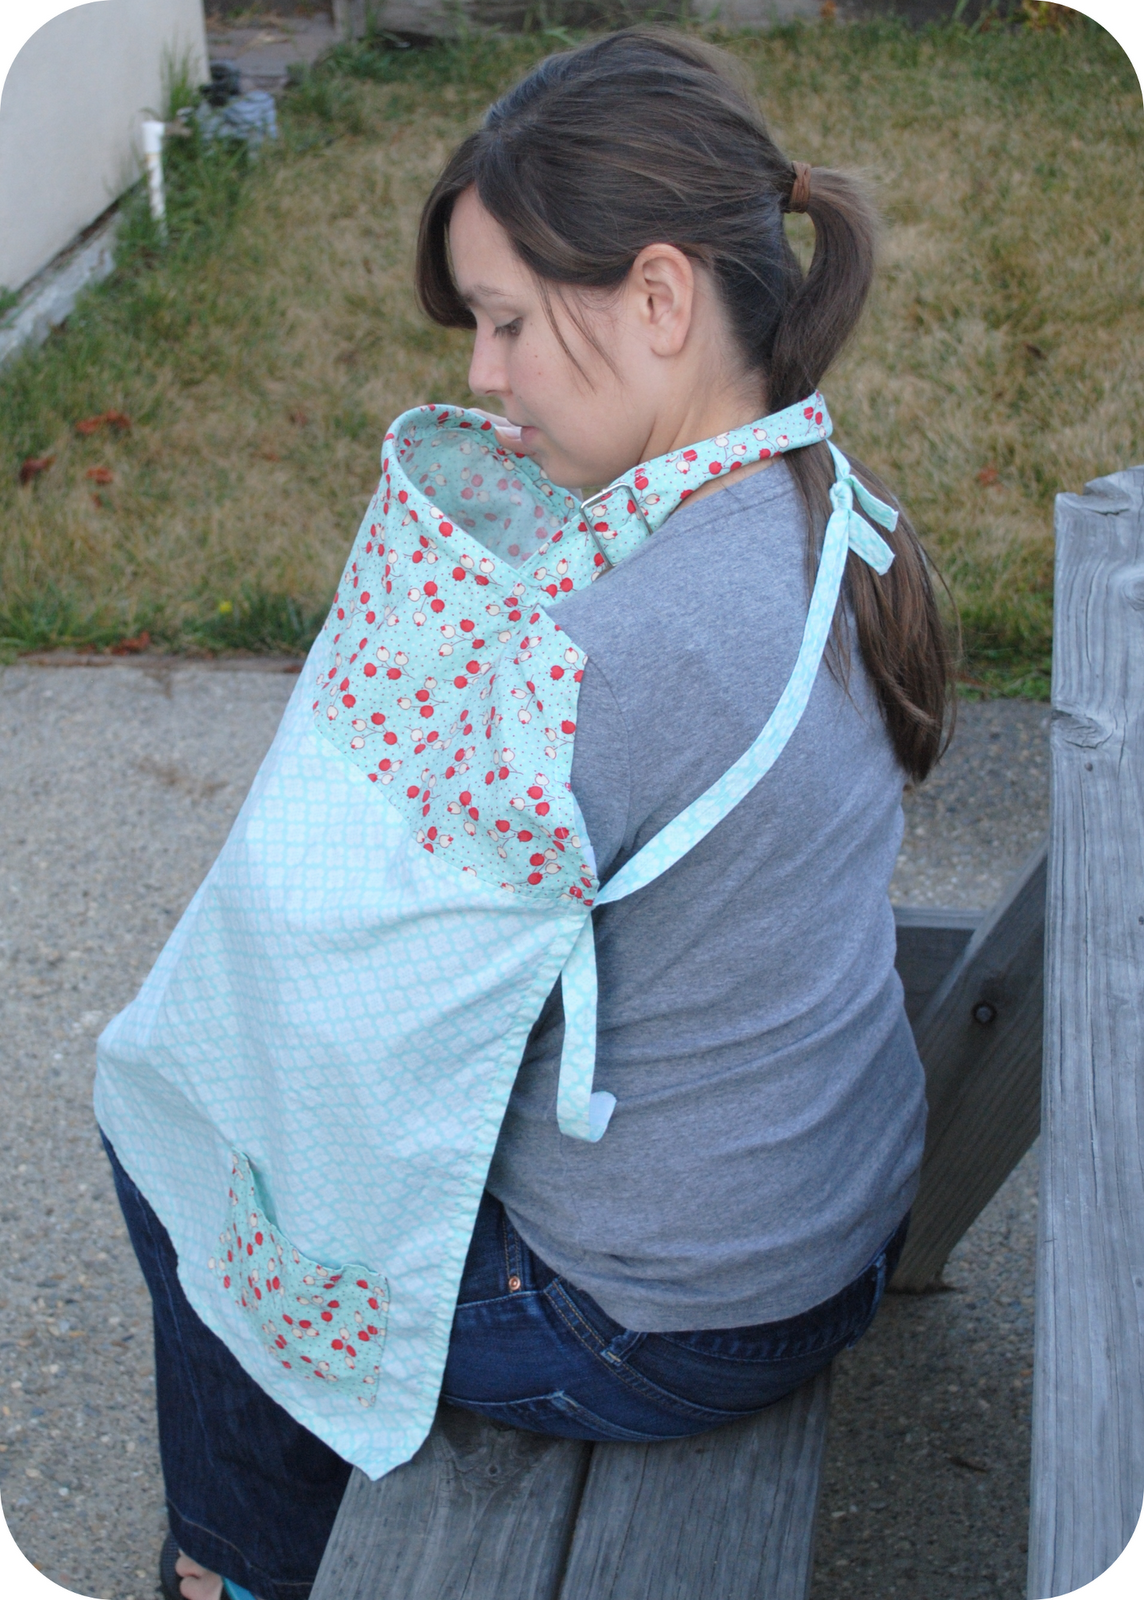 Clover U0026 Violet U2014 Not Your Average Nursing Cover (tutorial) Xox  Nursing Cover